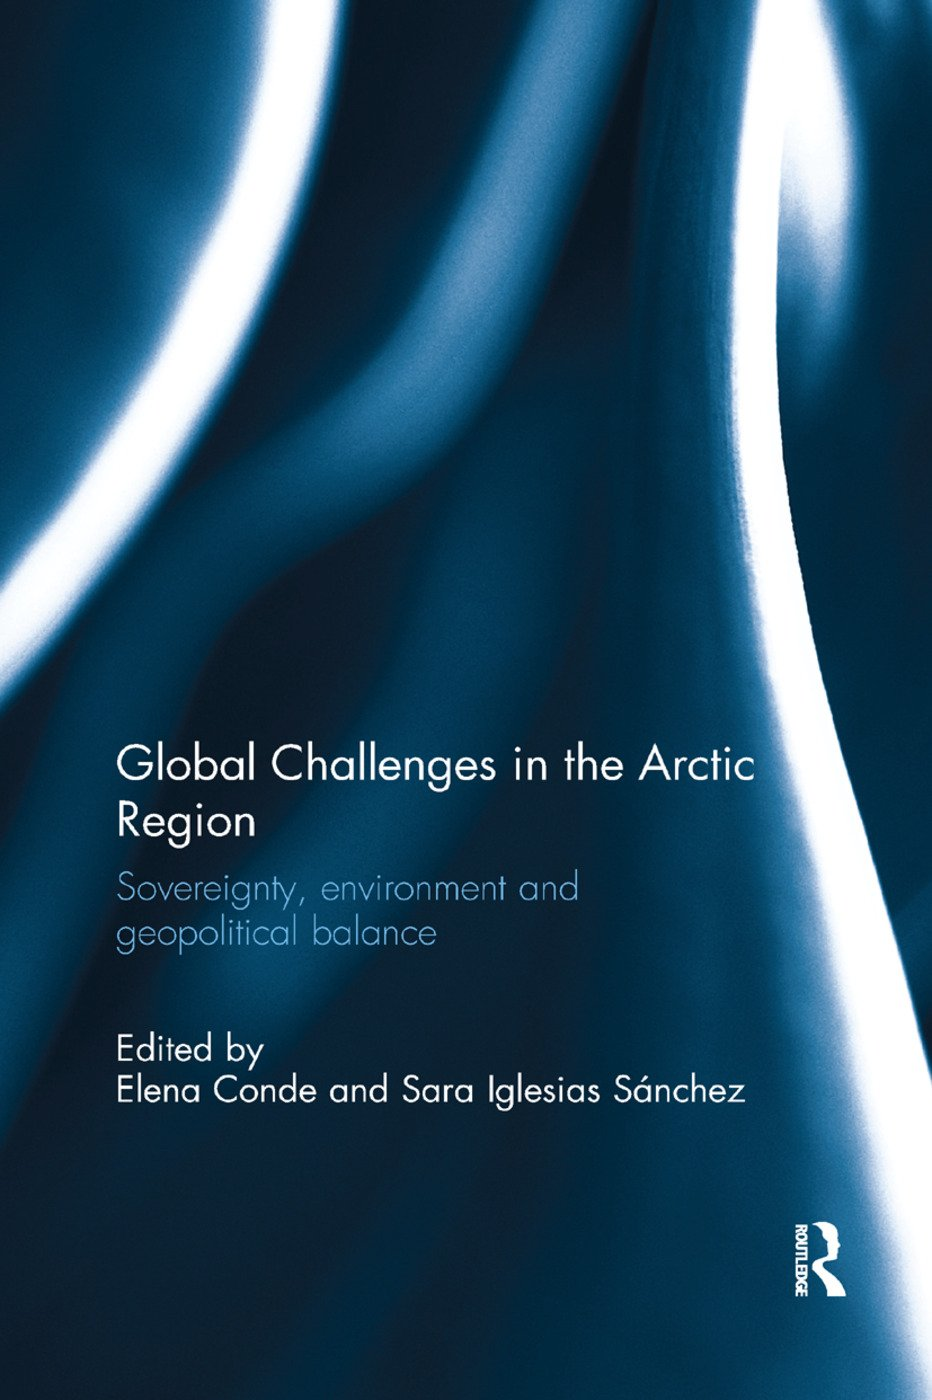 Global Challenges in the Arctic Region: Sovereignty, environment and geopolitical balance book cover